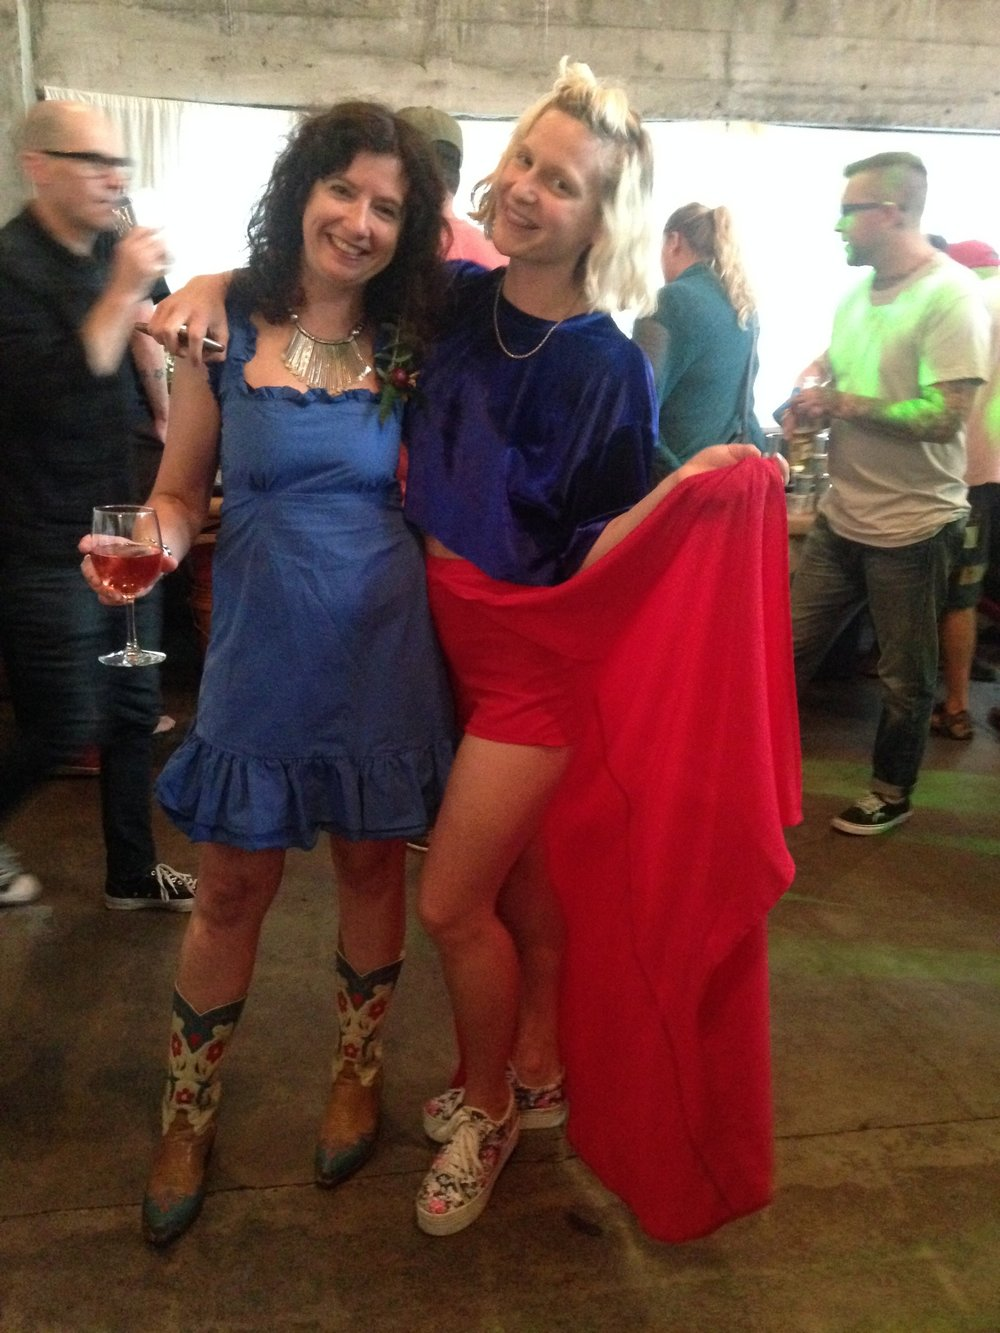 Me and super sweet Andi Bixel of  Drip Sweets  right before her inspiring talk. Our kind of patriotism shining through.